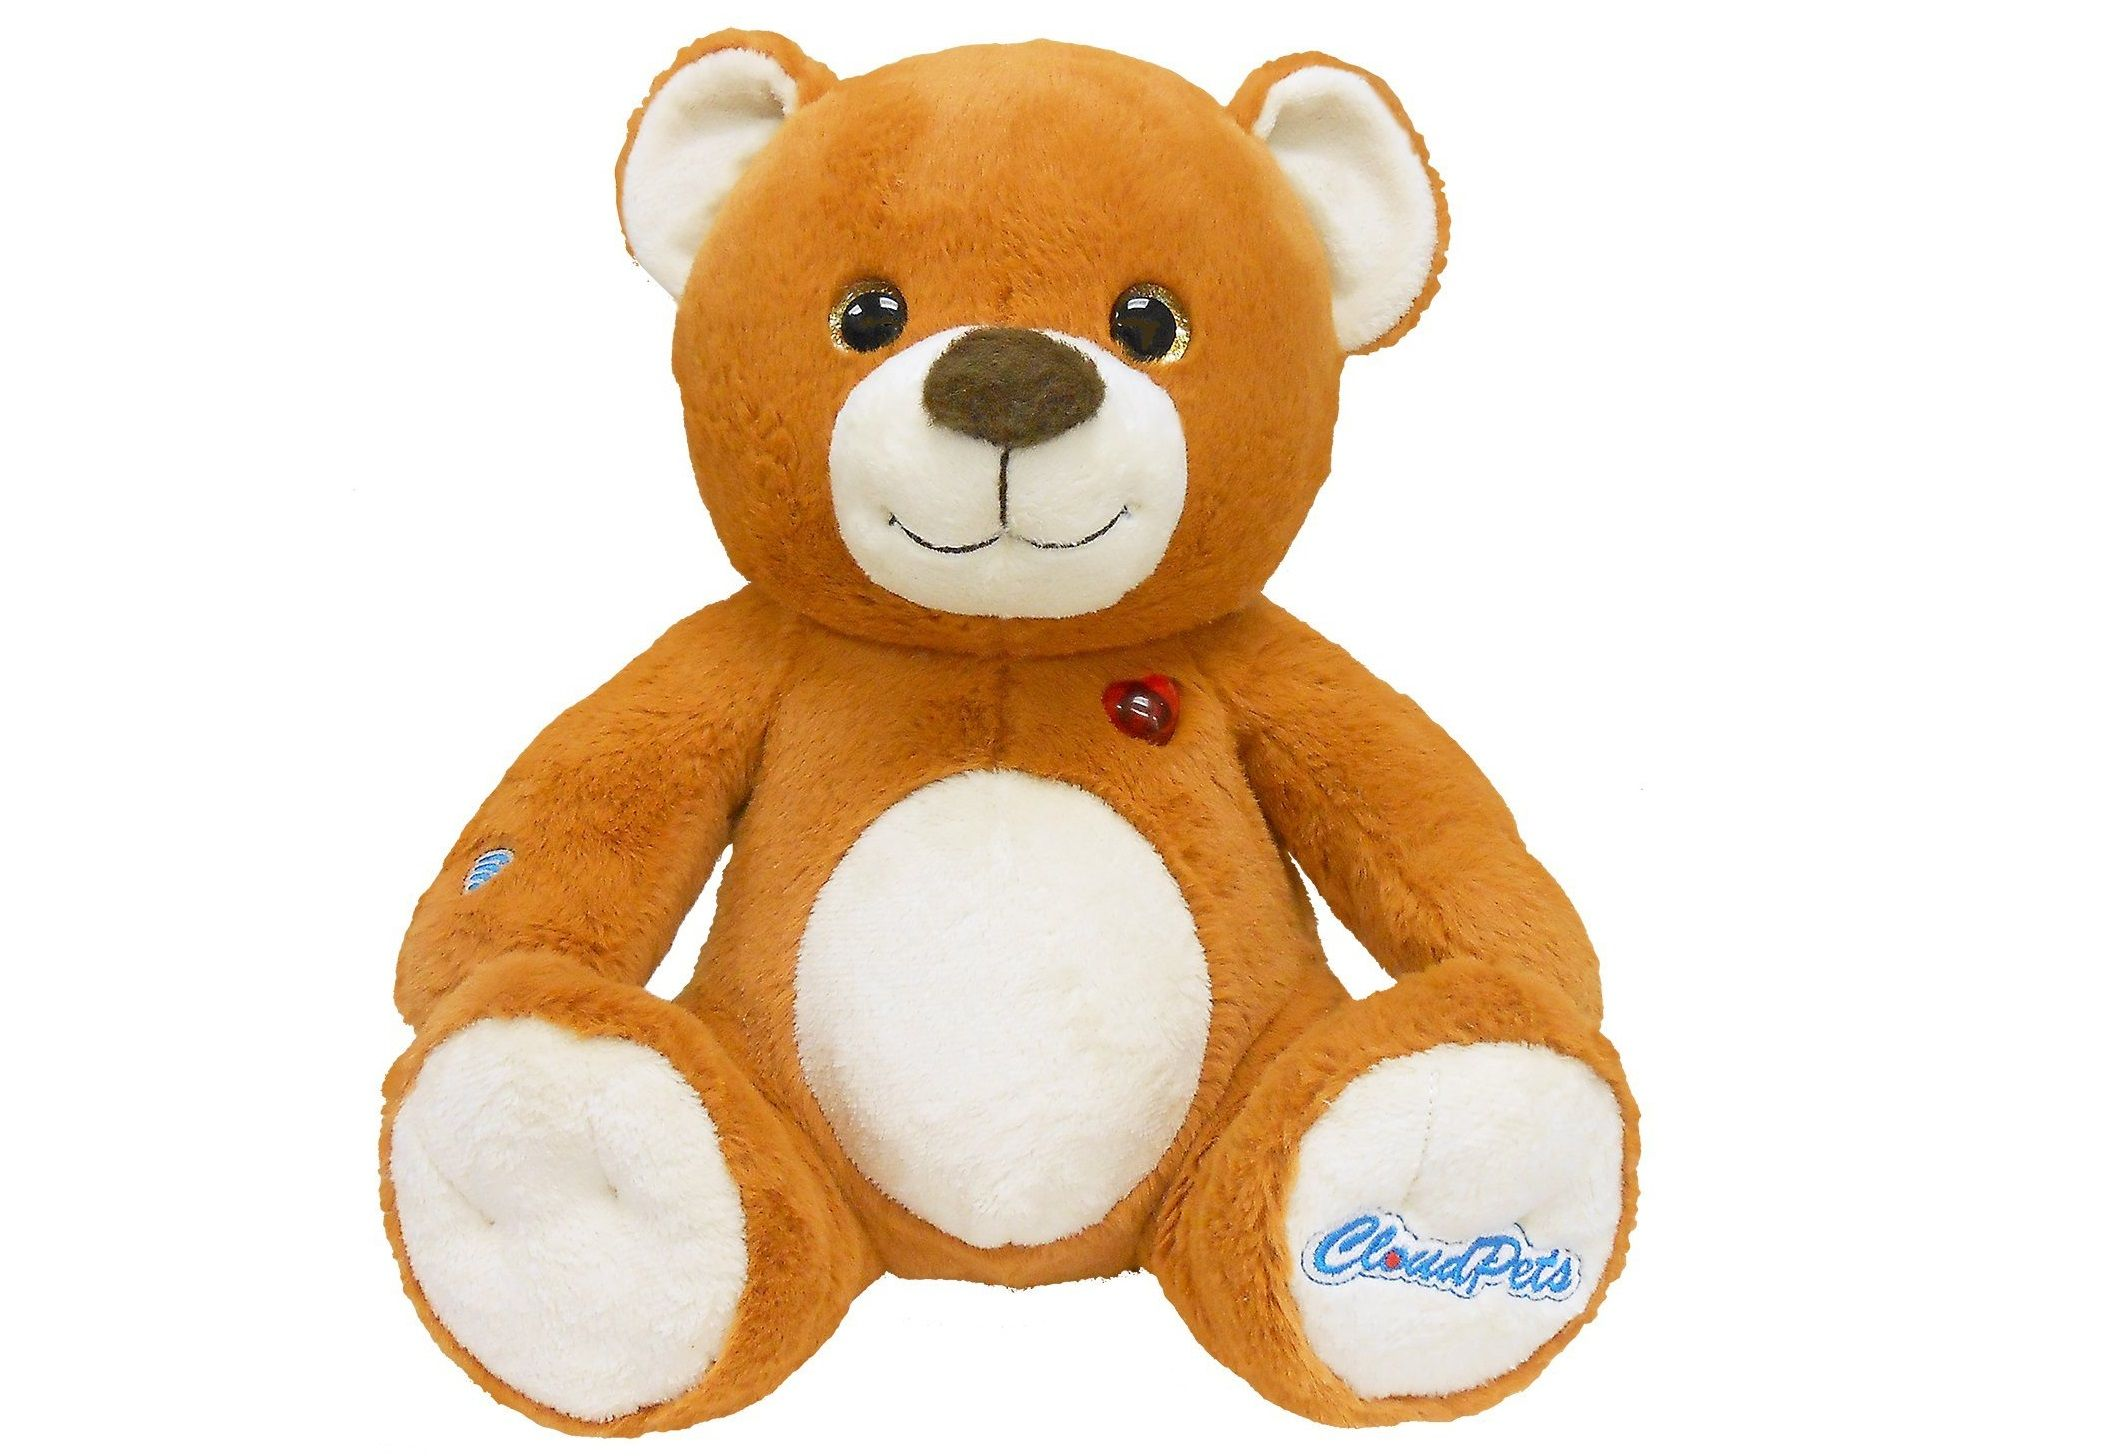 internet connected teddy bear leaks 2 million voice recordings of